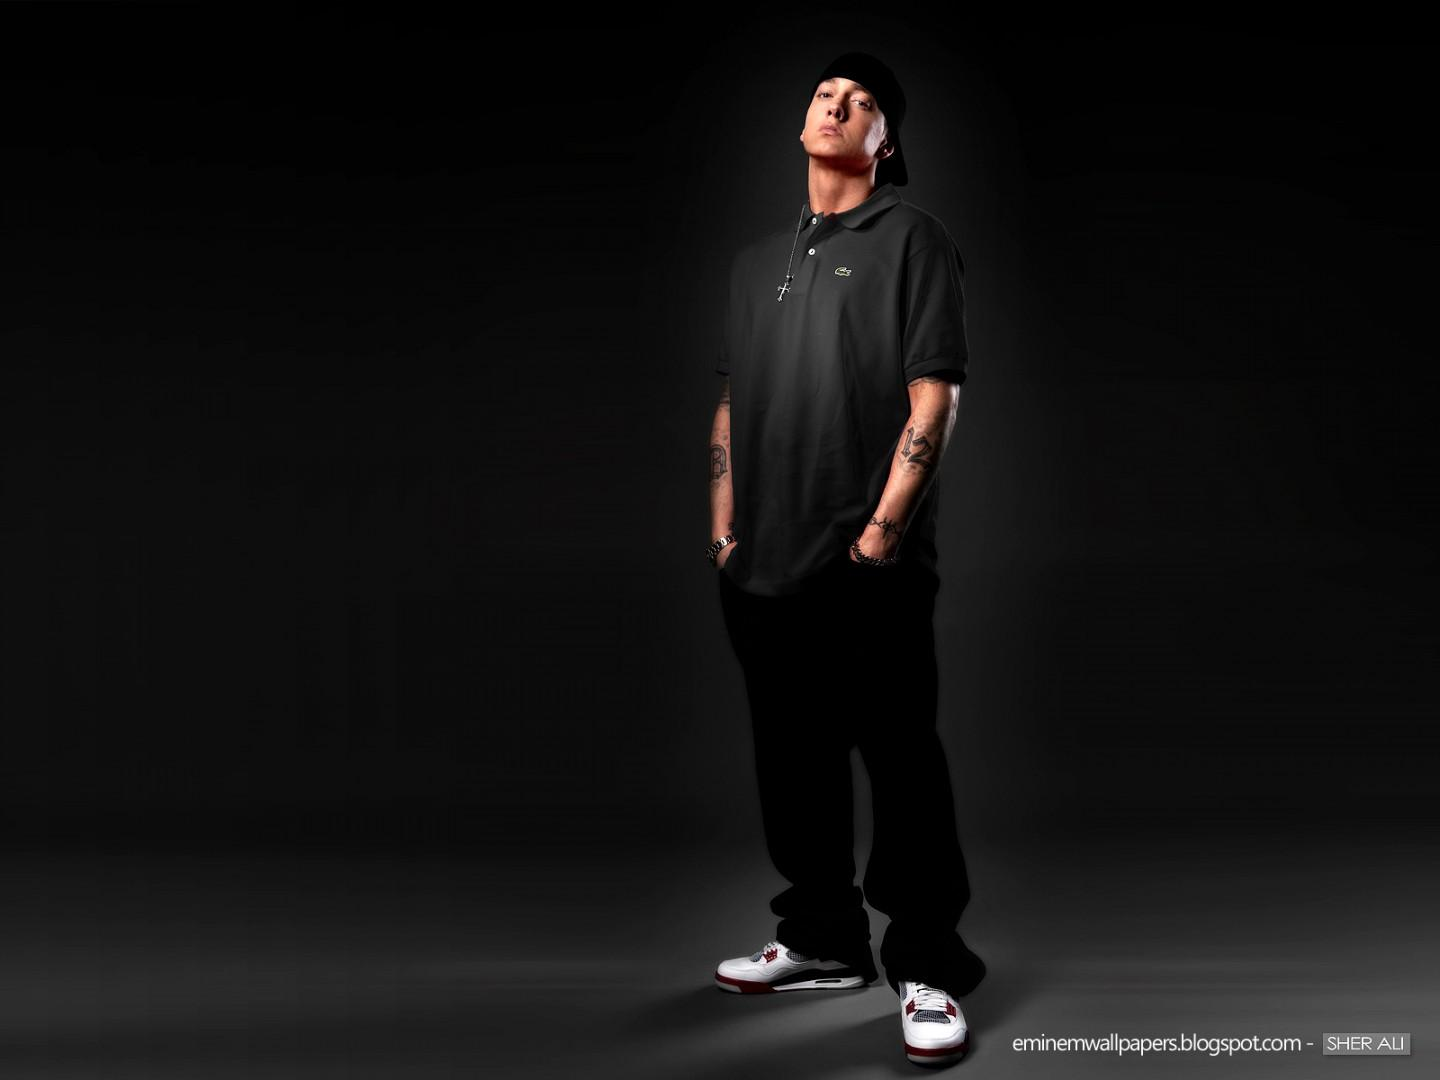 Download Eminem Hd Wallpapers 2014 Hd Backgrounds Pictures to pin